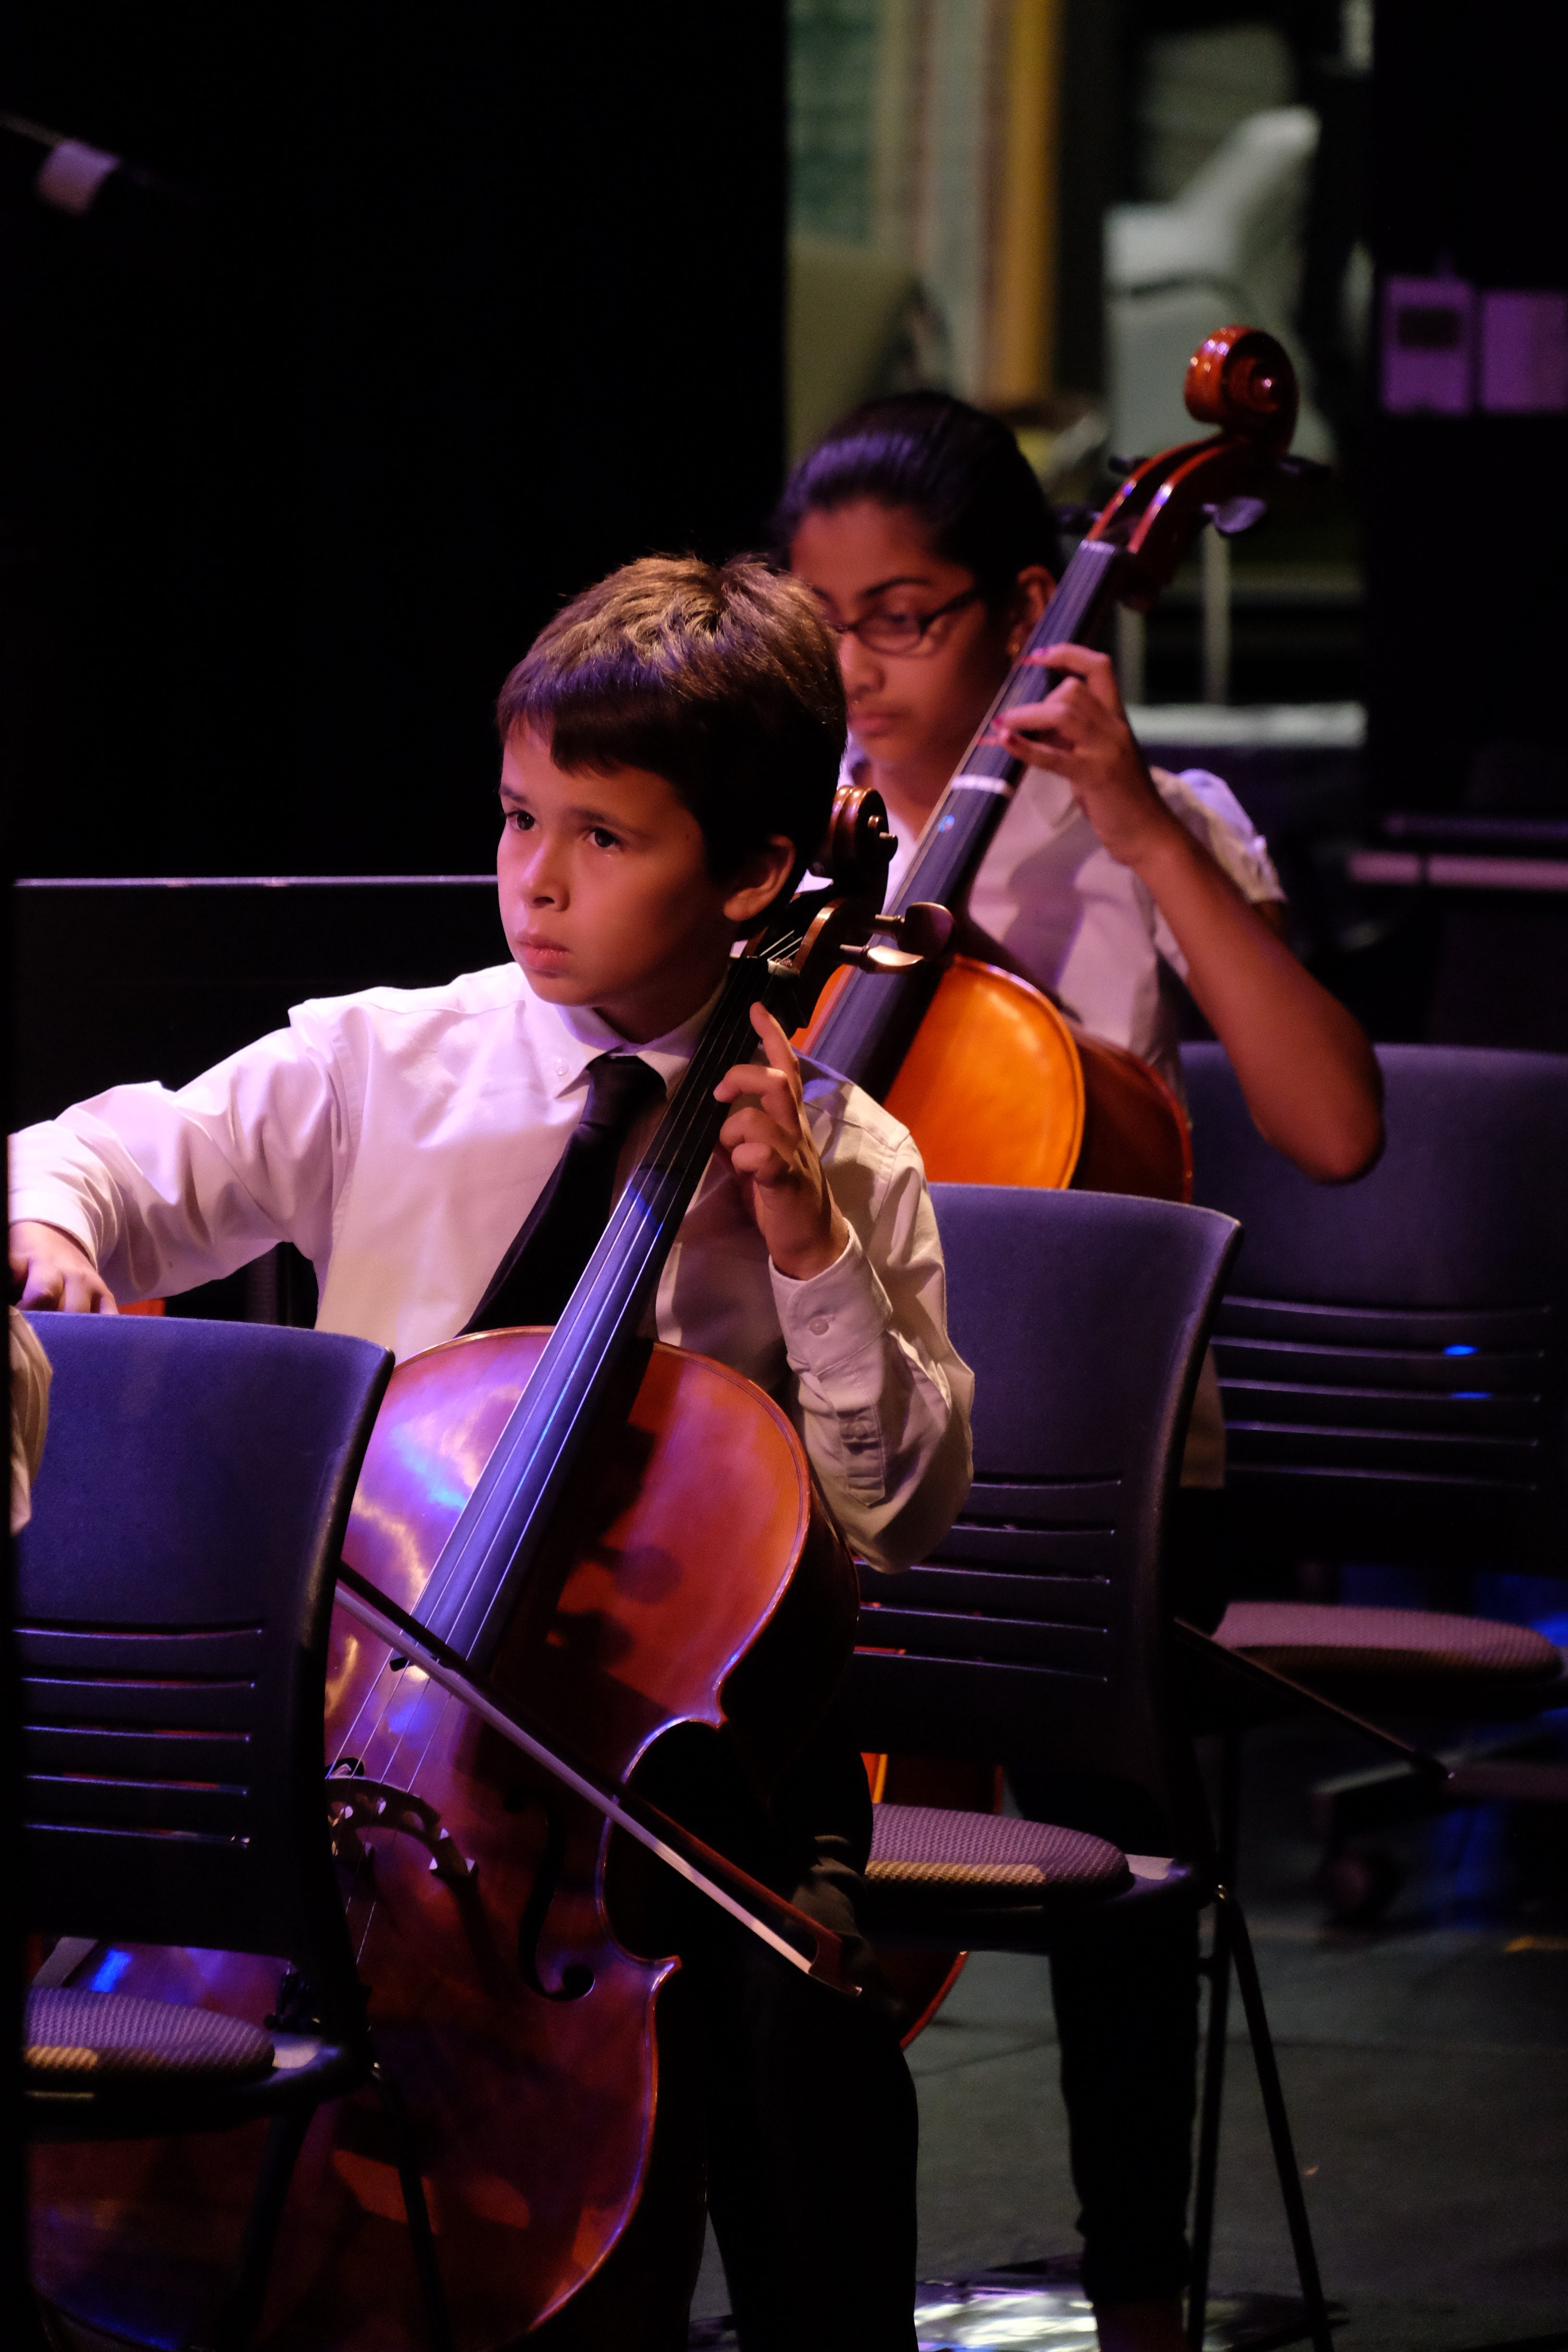 photo of two string orchestra cellists during a concert